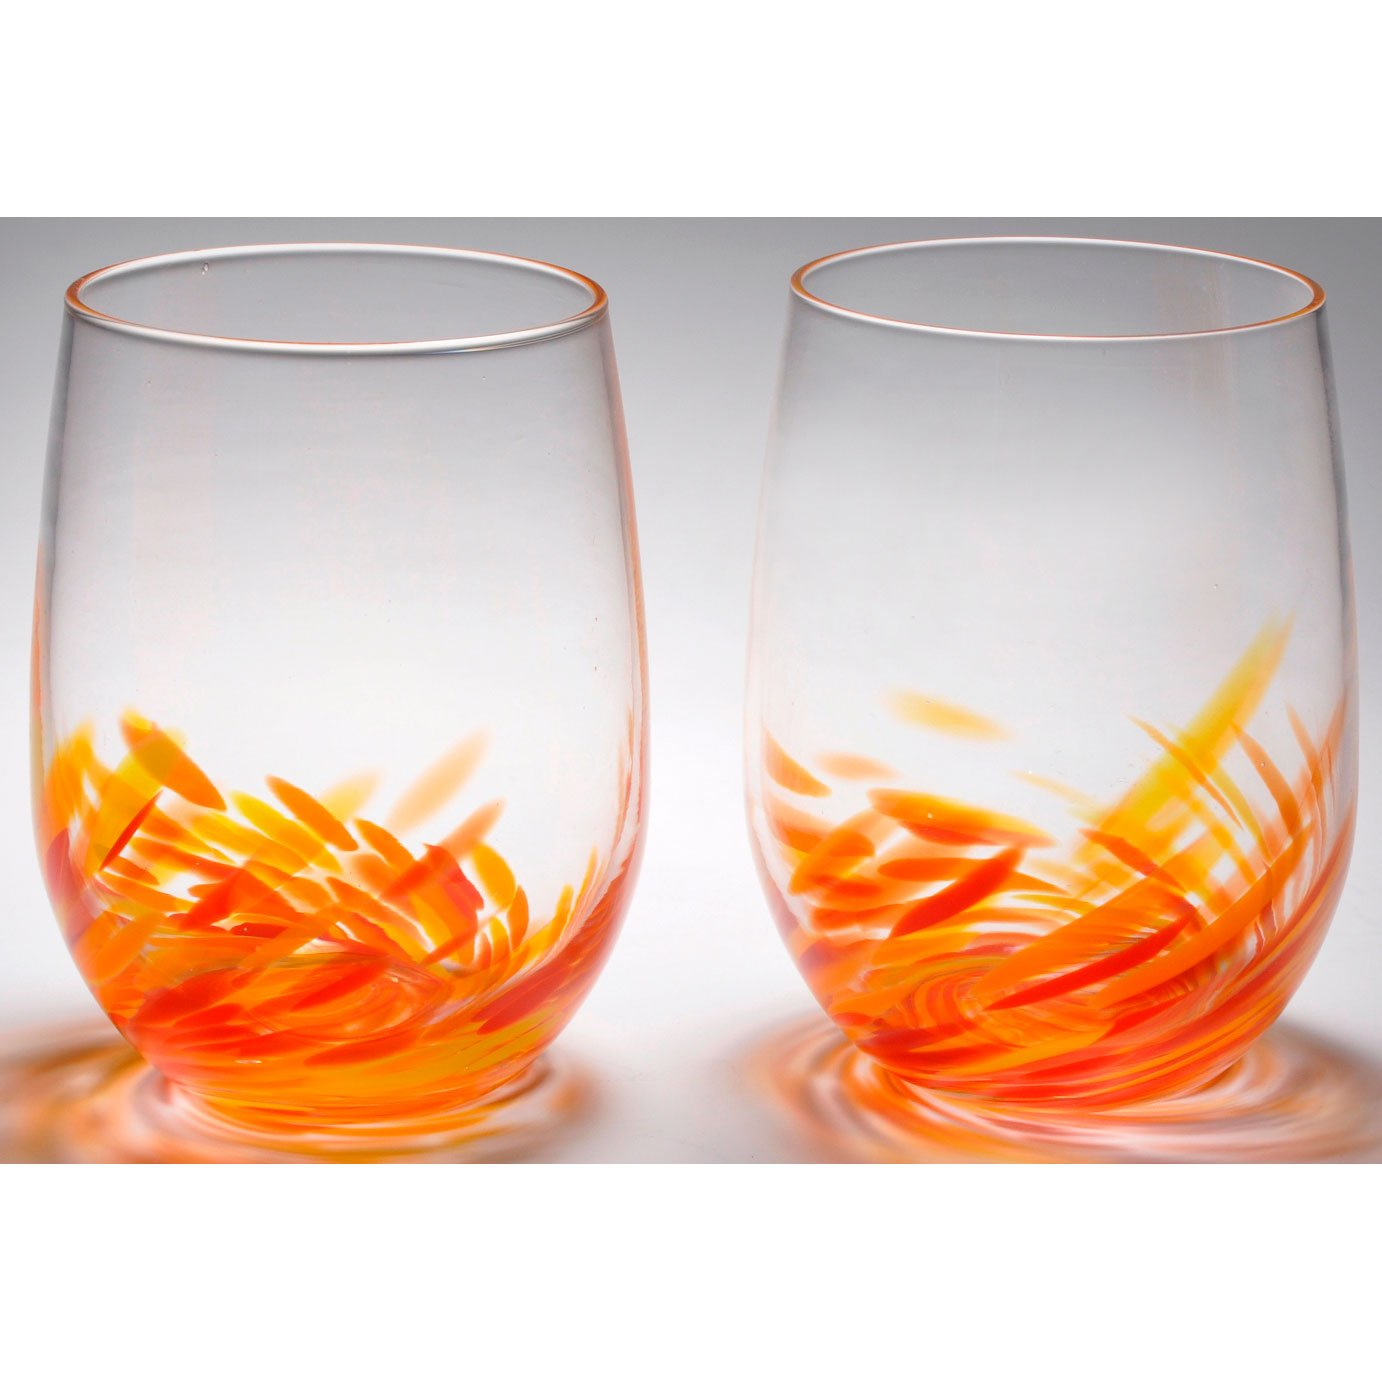 ce55027f729 The Furnace Glassworks Vino Breve Glasses Shown in Red Orange four Piece  Set Functional Artisan Handblown ...